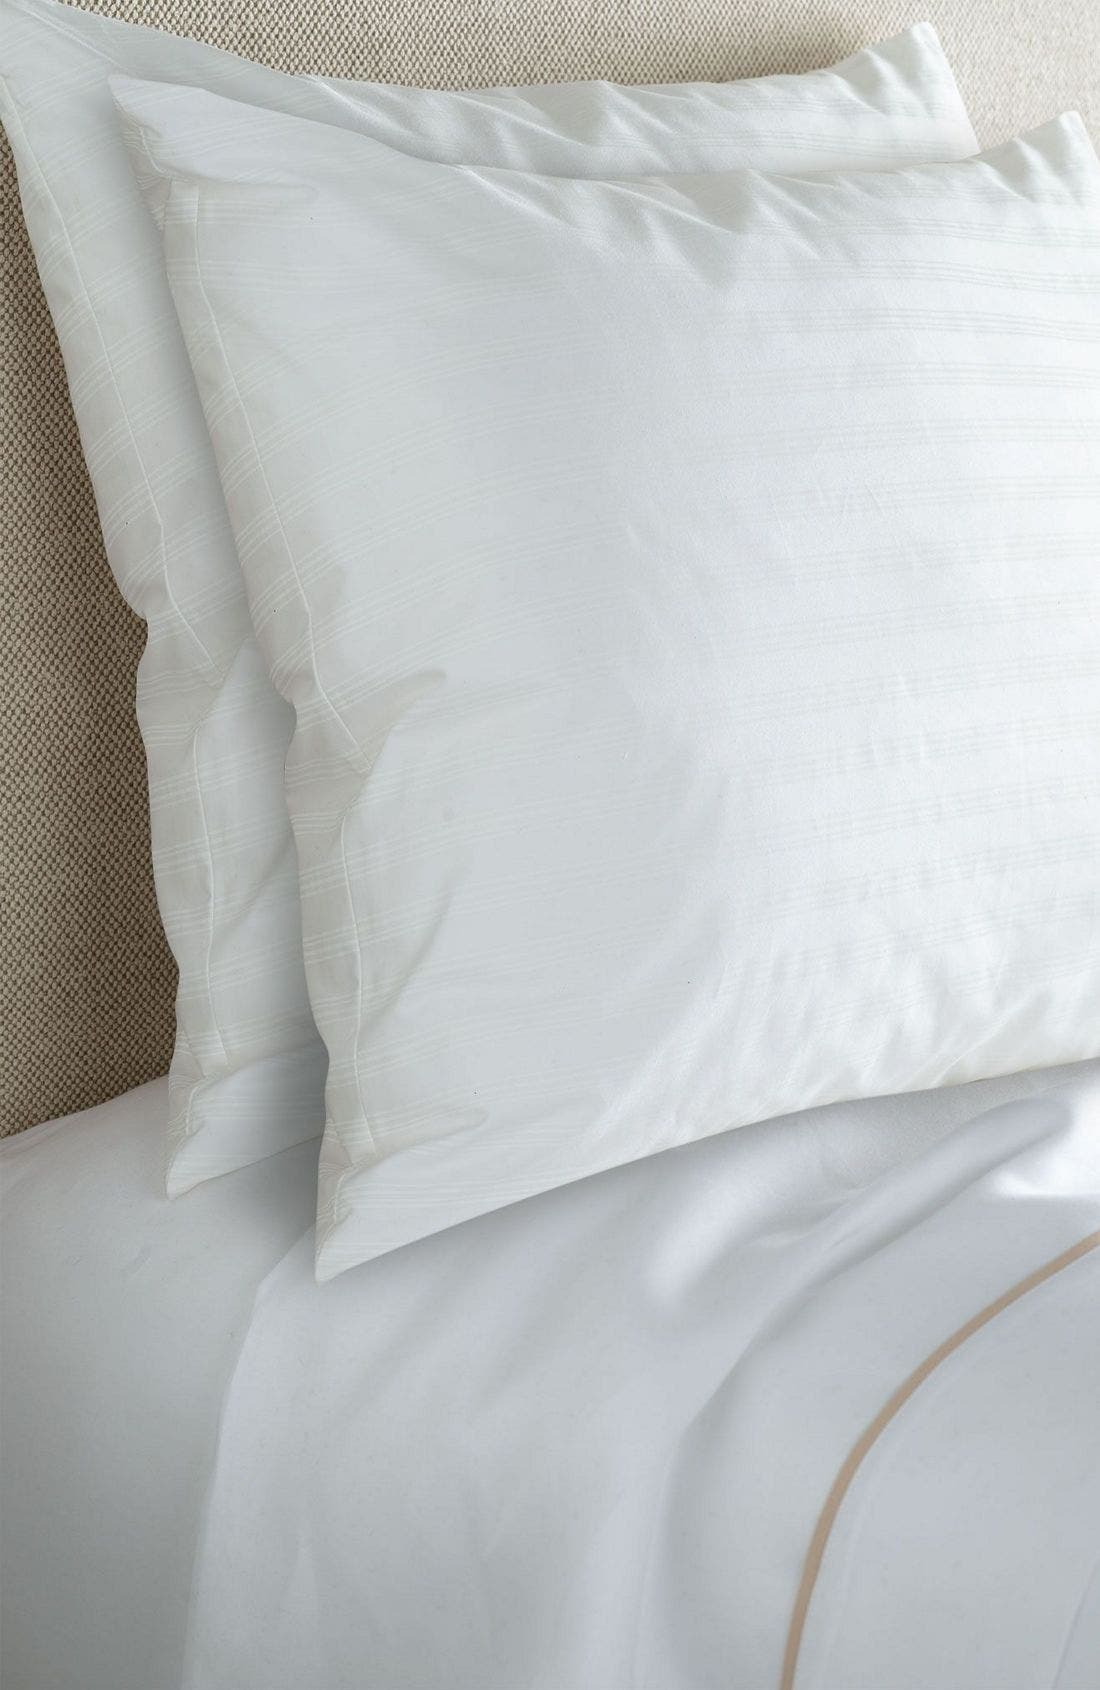 'Home Collection' Hypoallergenic Pillow,                             Alternate thumbnail 5, color,                             WHI